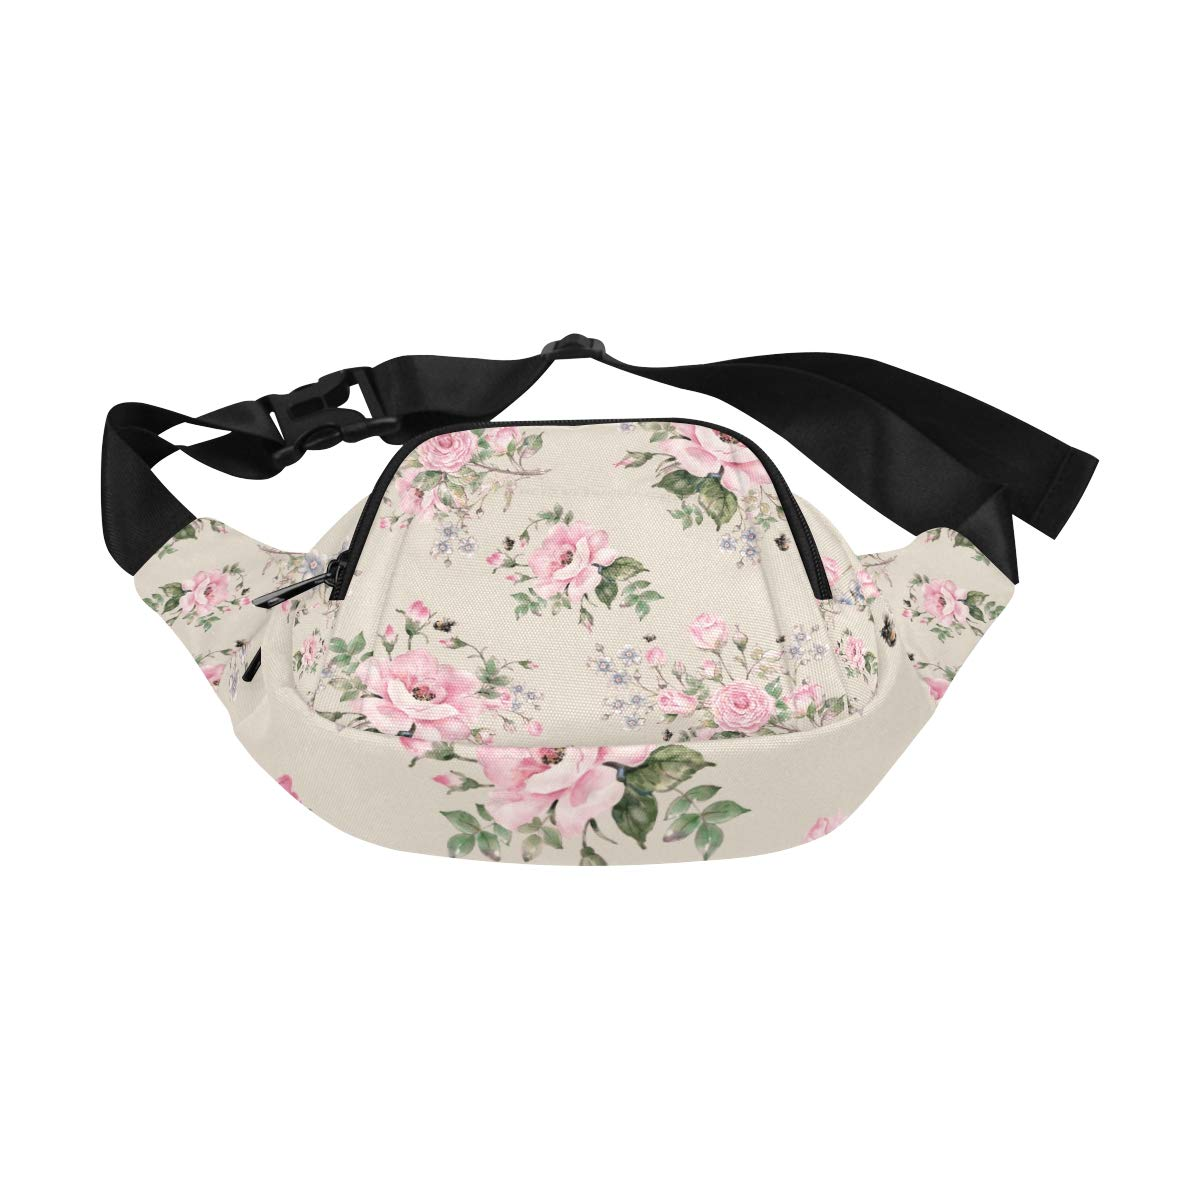 Blooming English Rose Watercolor Fenny Packs Waist Bags Adjustable Belt Waterproof Nylon Travel Running Sport Vacation Party For Men Women Boys Girls Kids